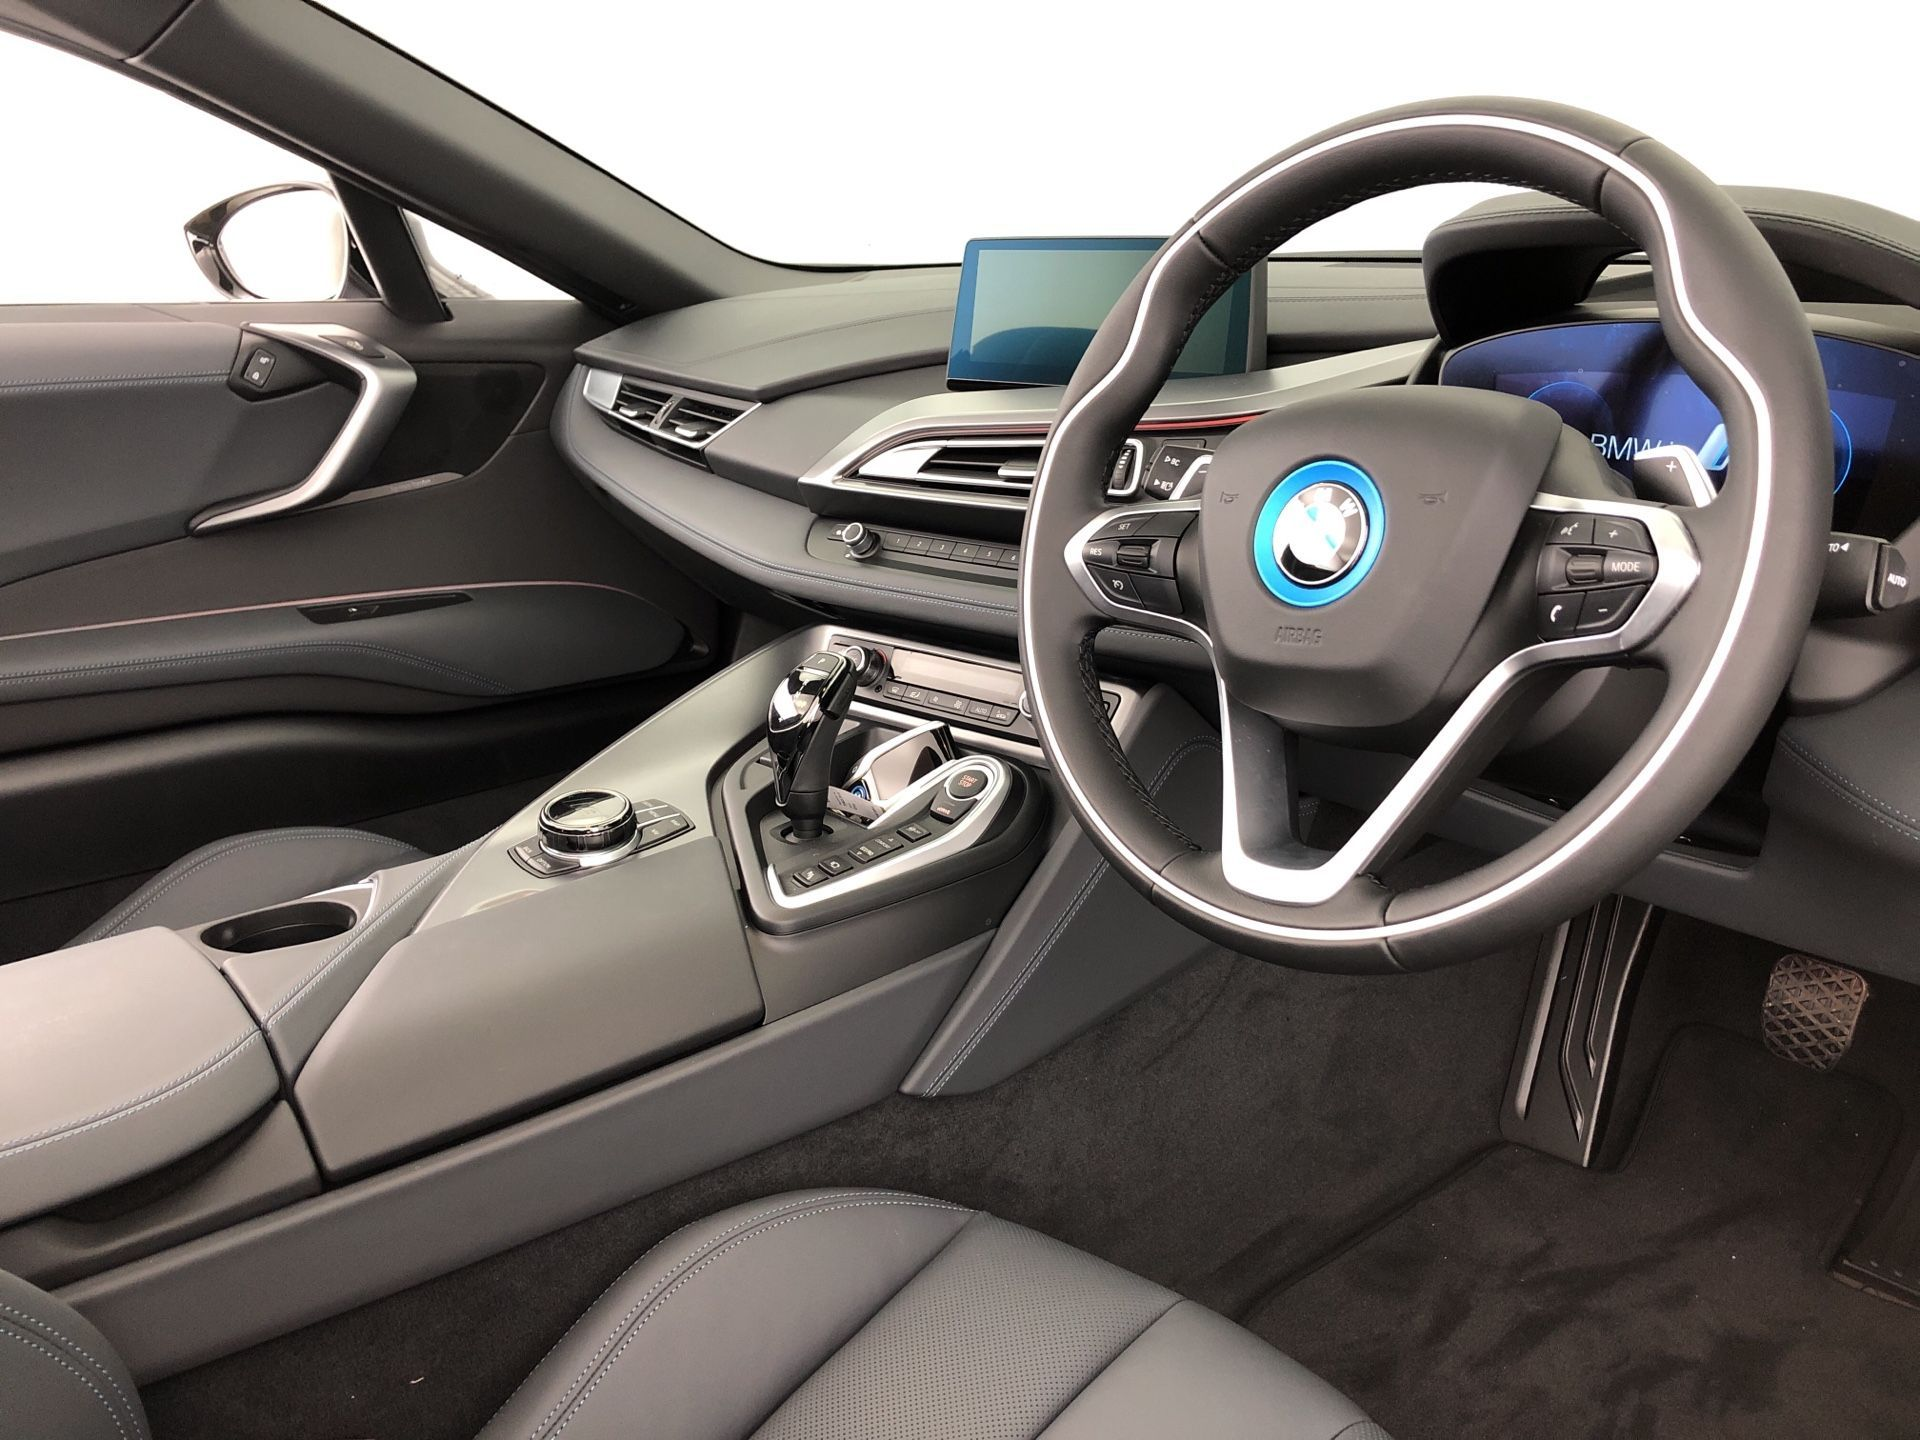 Image 3 - BMW 1.5 11.6kWh Roadster Auto 4WD (s/s) 2dr (YH68JMW)